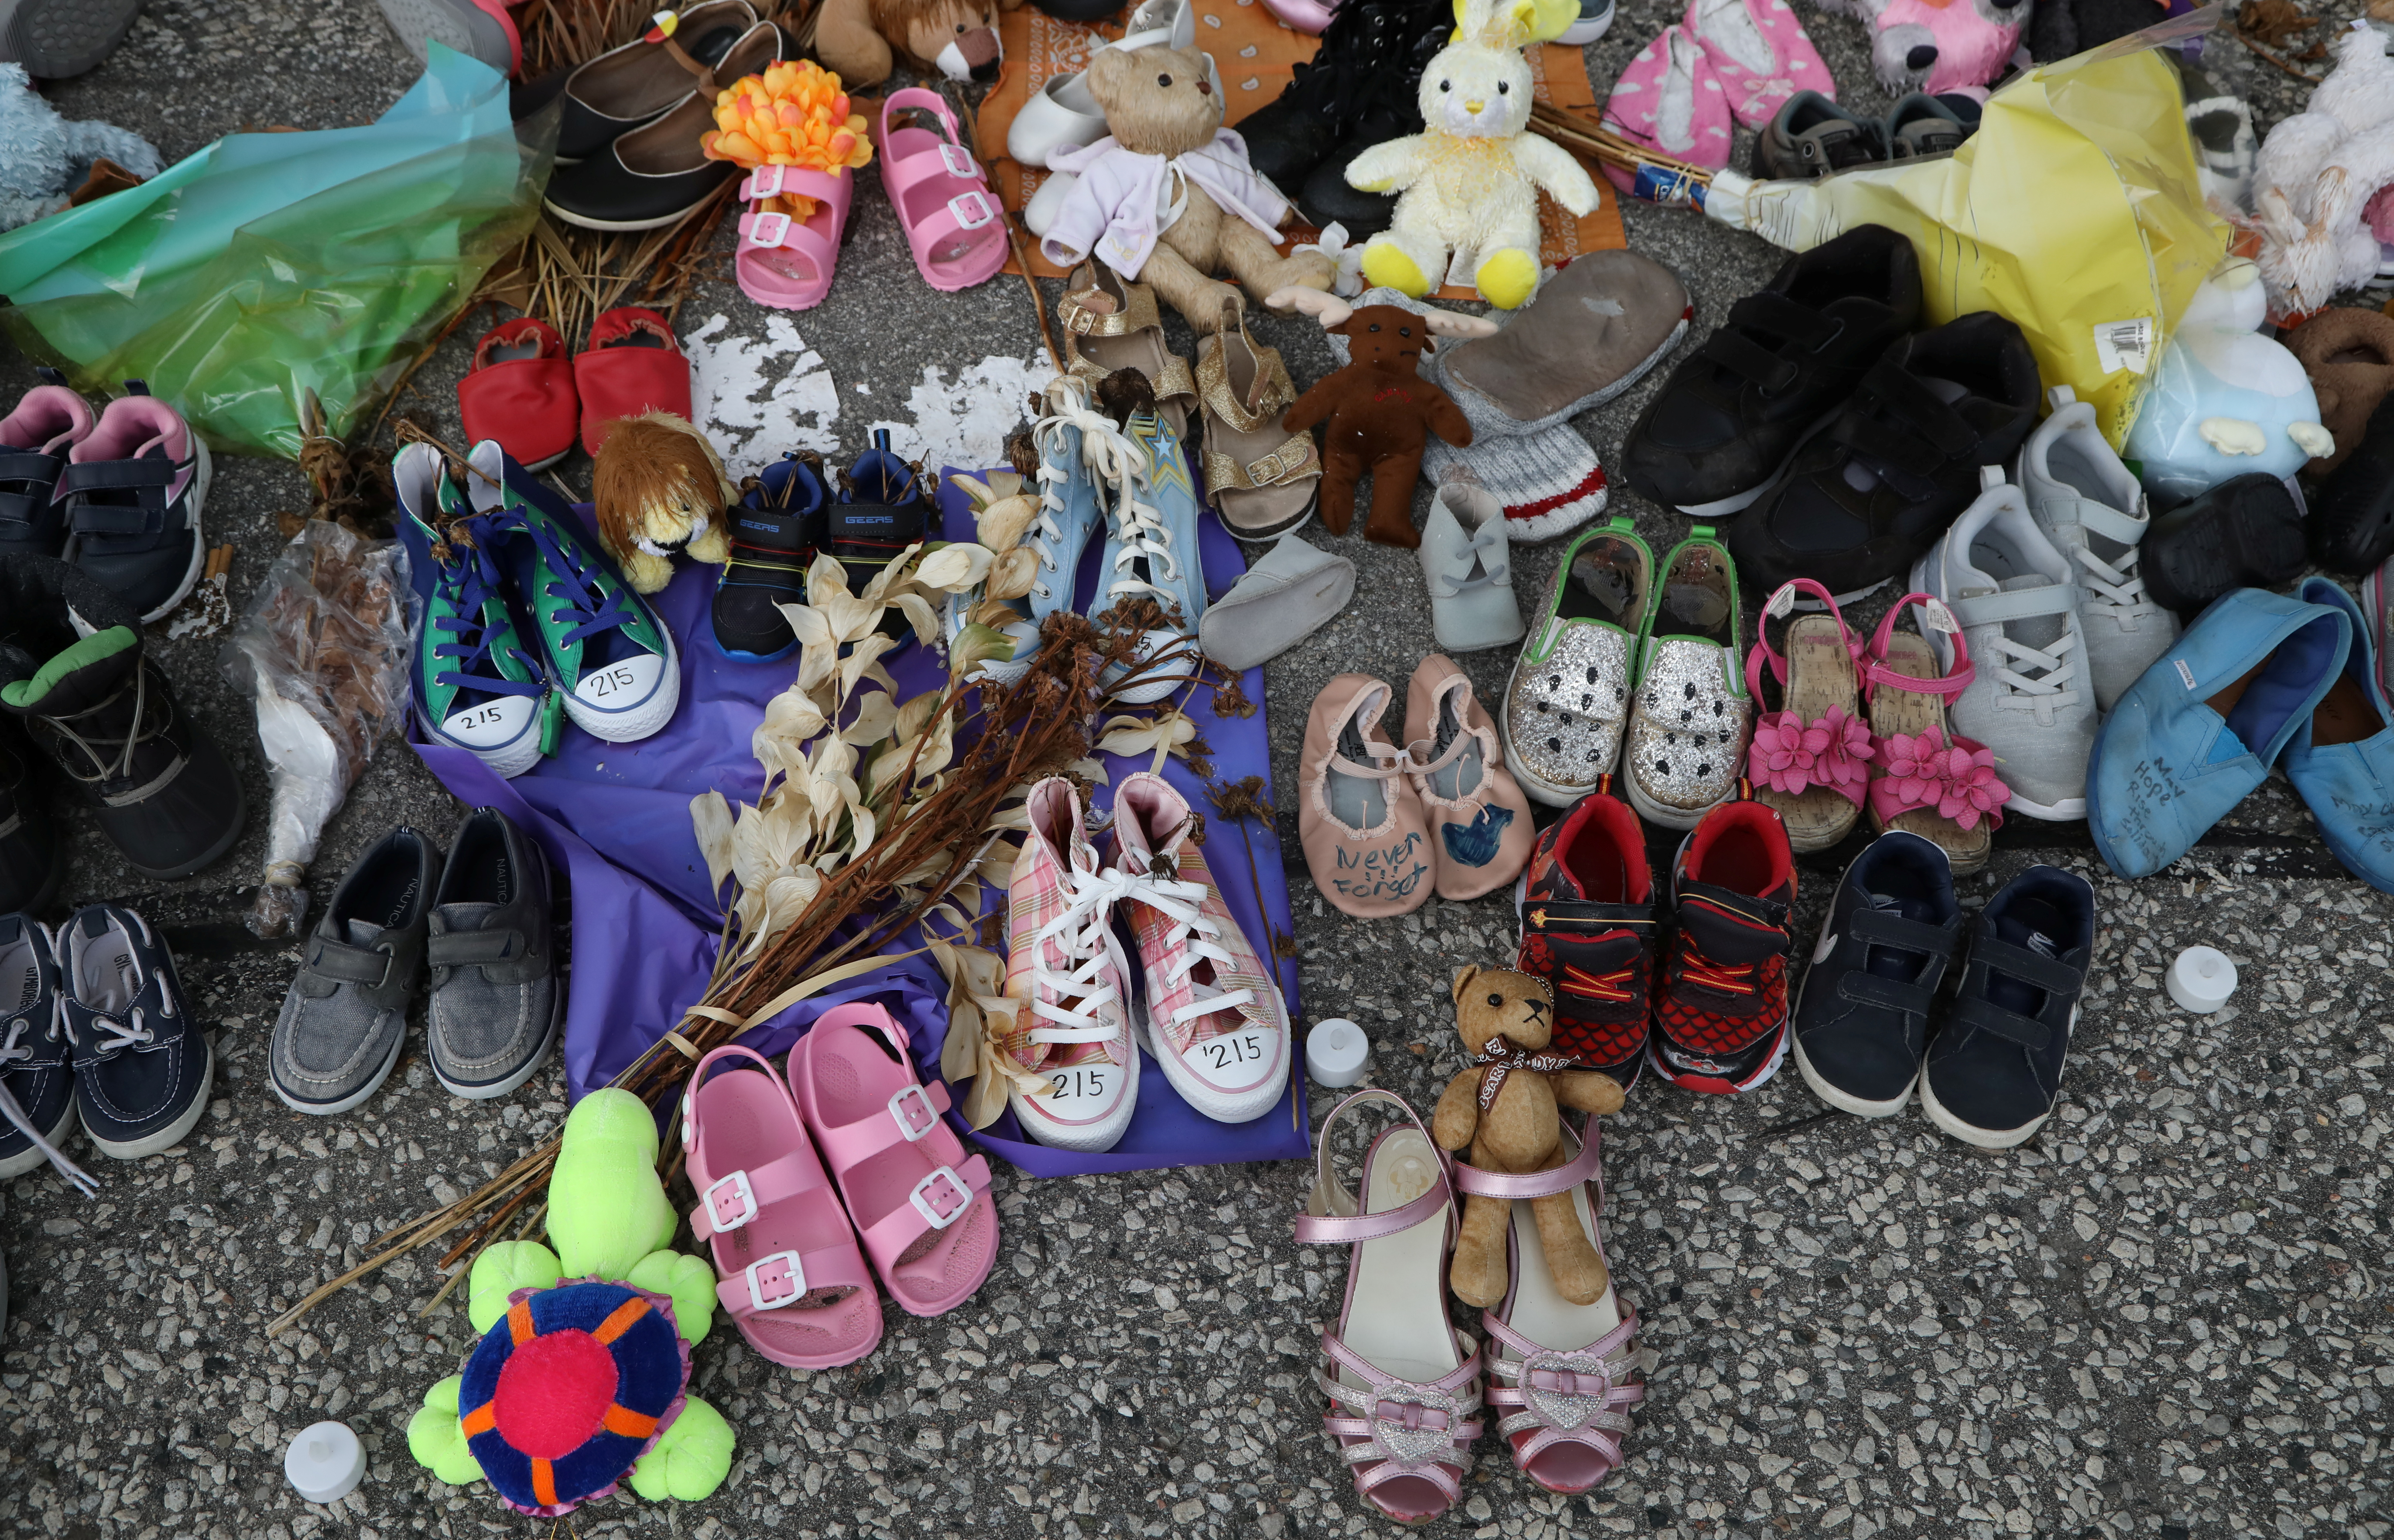 Baby shoes are placed at the Queens Park provincial legislature, after the discovery of hundreds of remains of children at former indigenous residential schools, on Canada Day in Toronto, Ontario, Canada July 1, 2021. REUTERS/Carlos Osorio